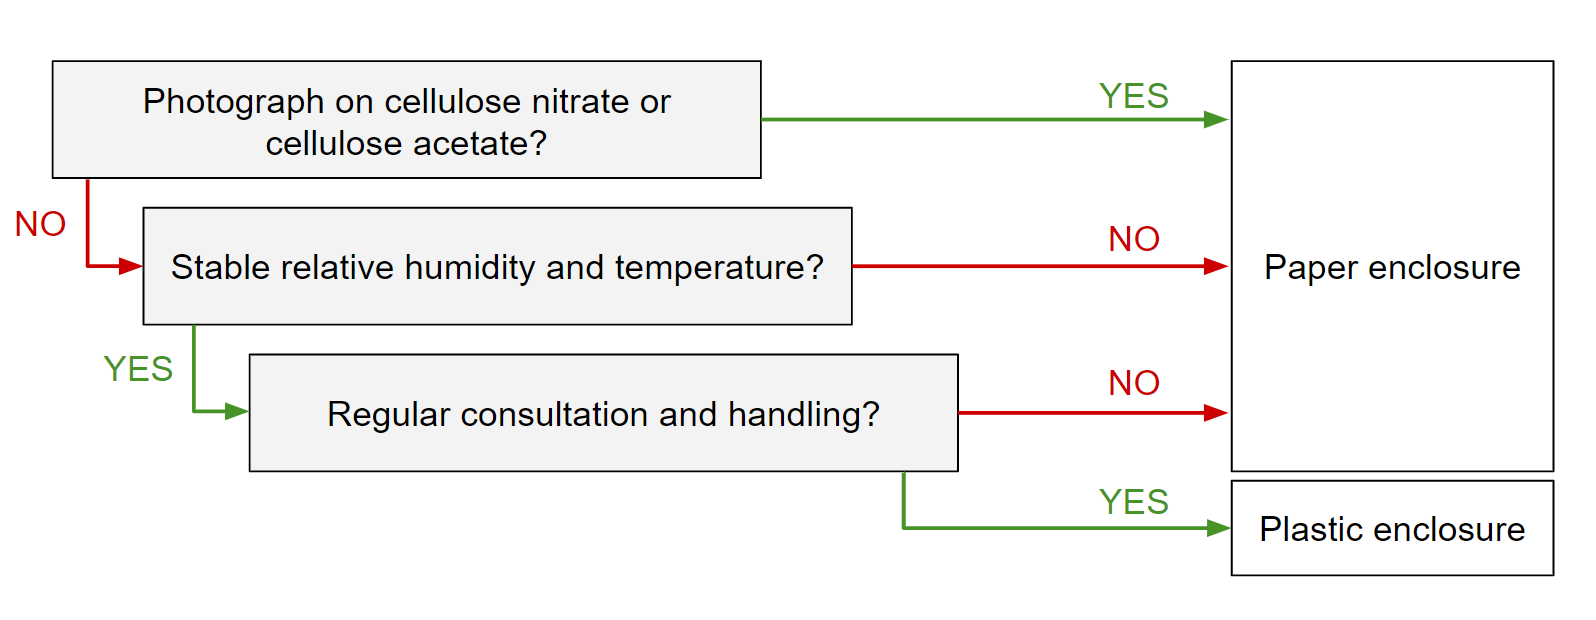 Decision tree to help determine the most appropriate enclosure material, paper or plastic, for your photograph collection.